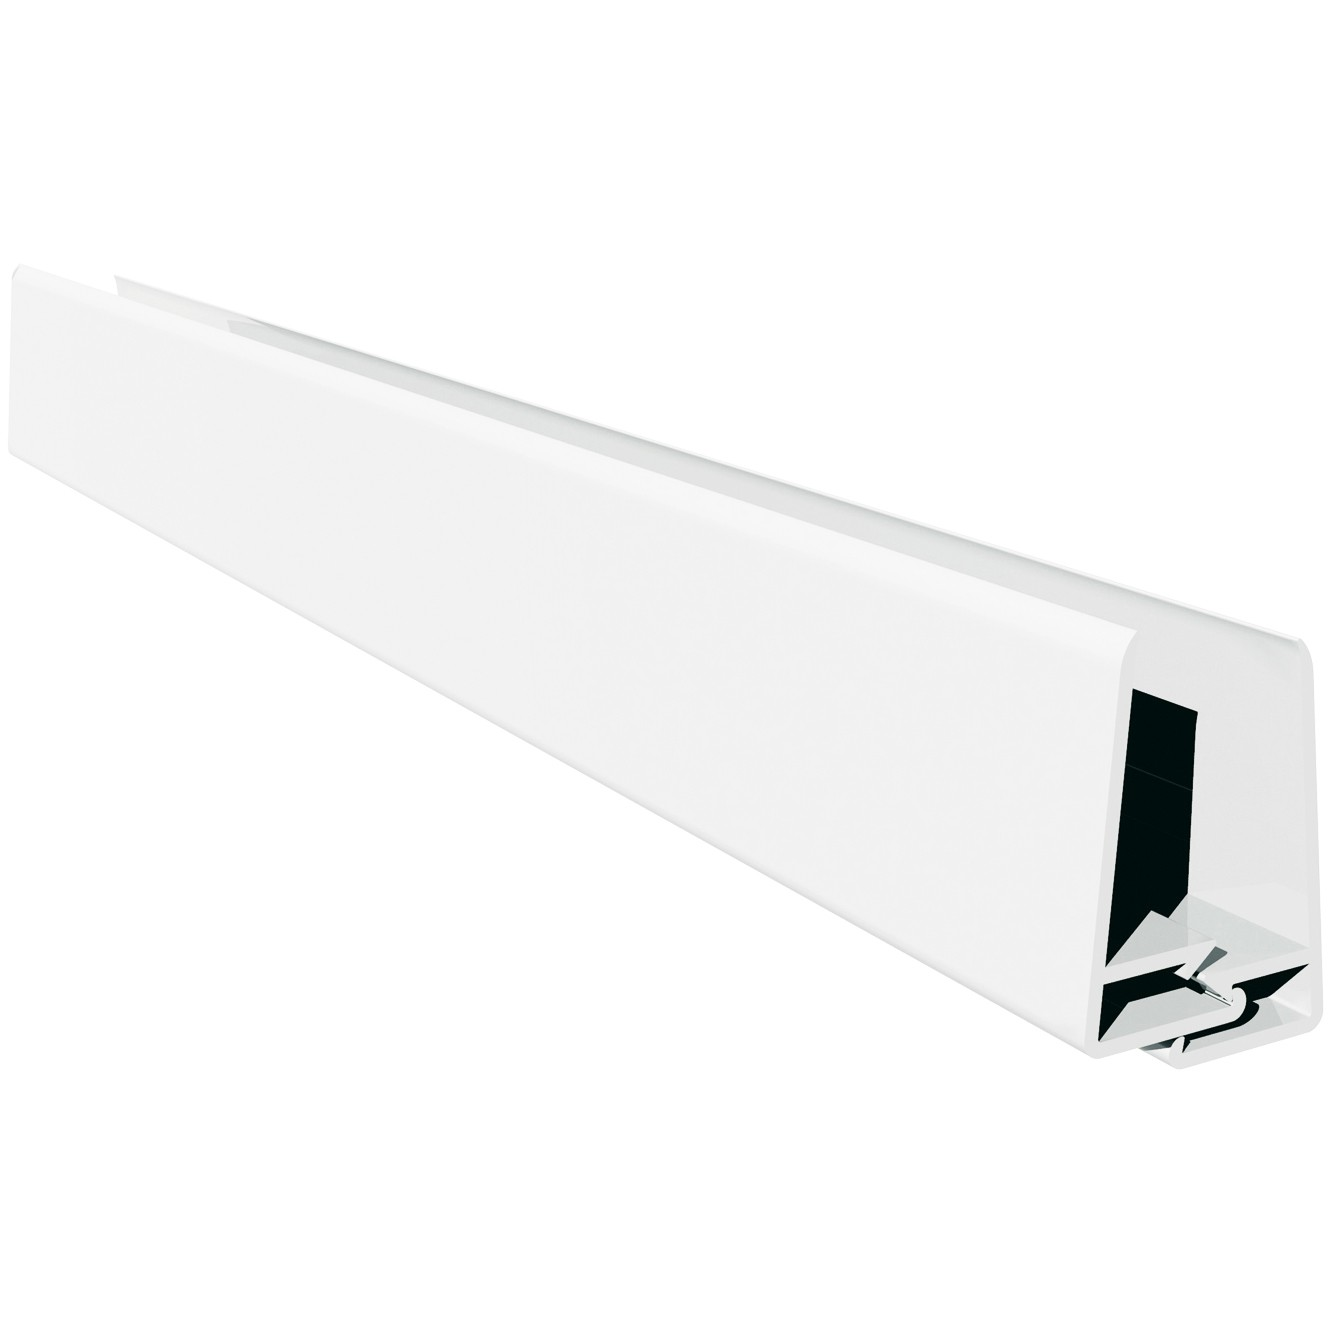 Freefoam Shiplap Cladding 2 Part Edge Trim - White, 151mm, 3 metre